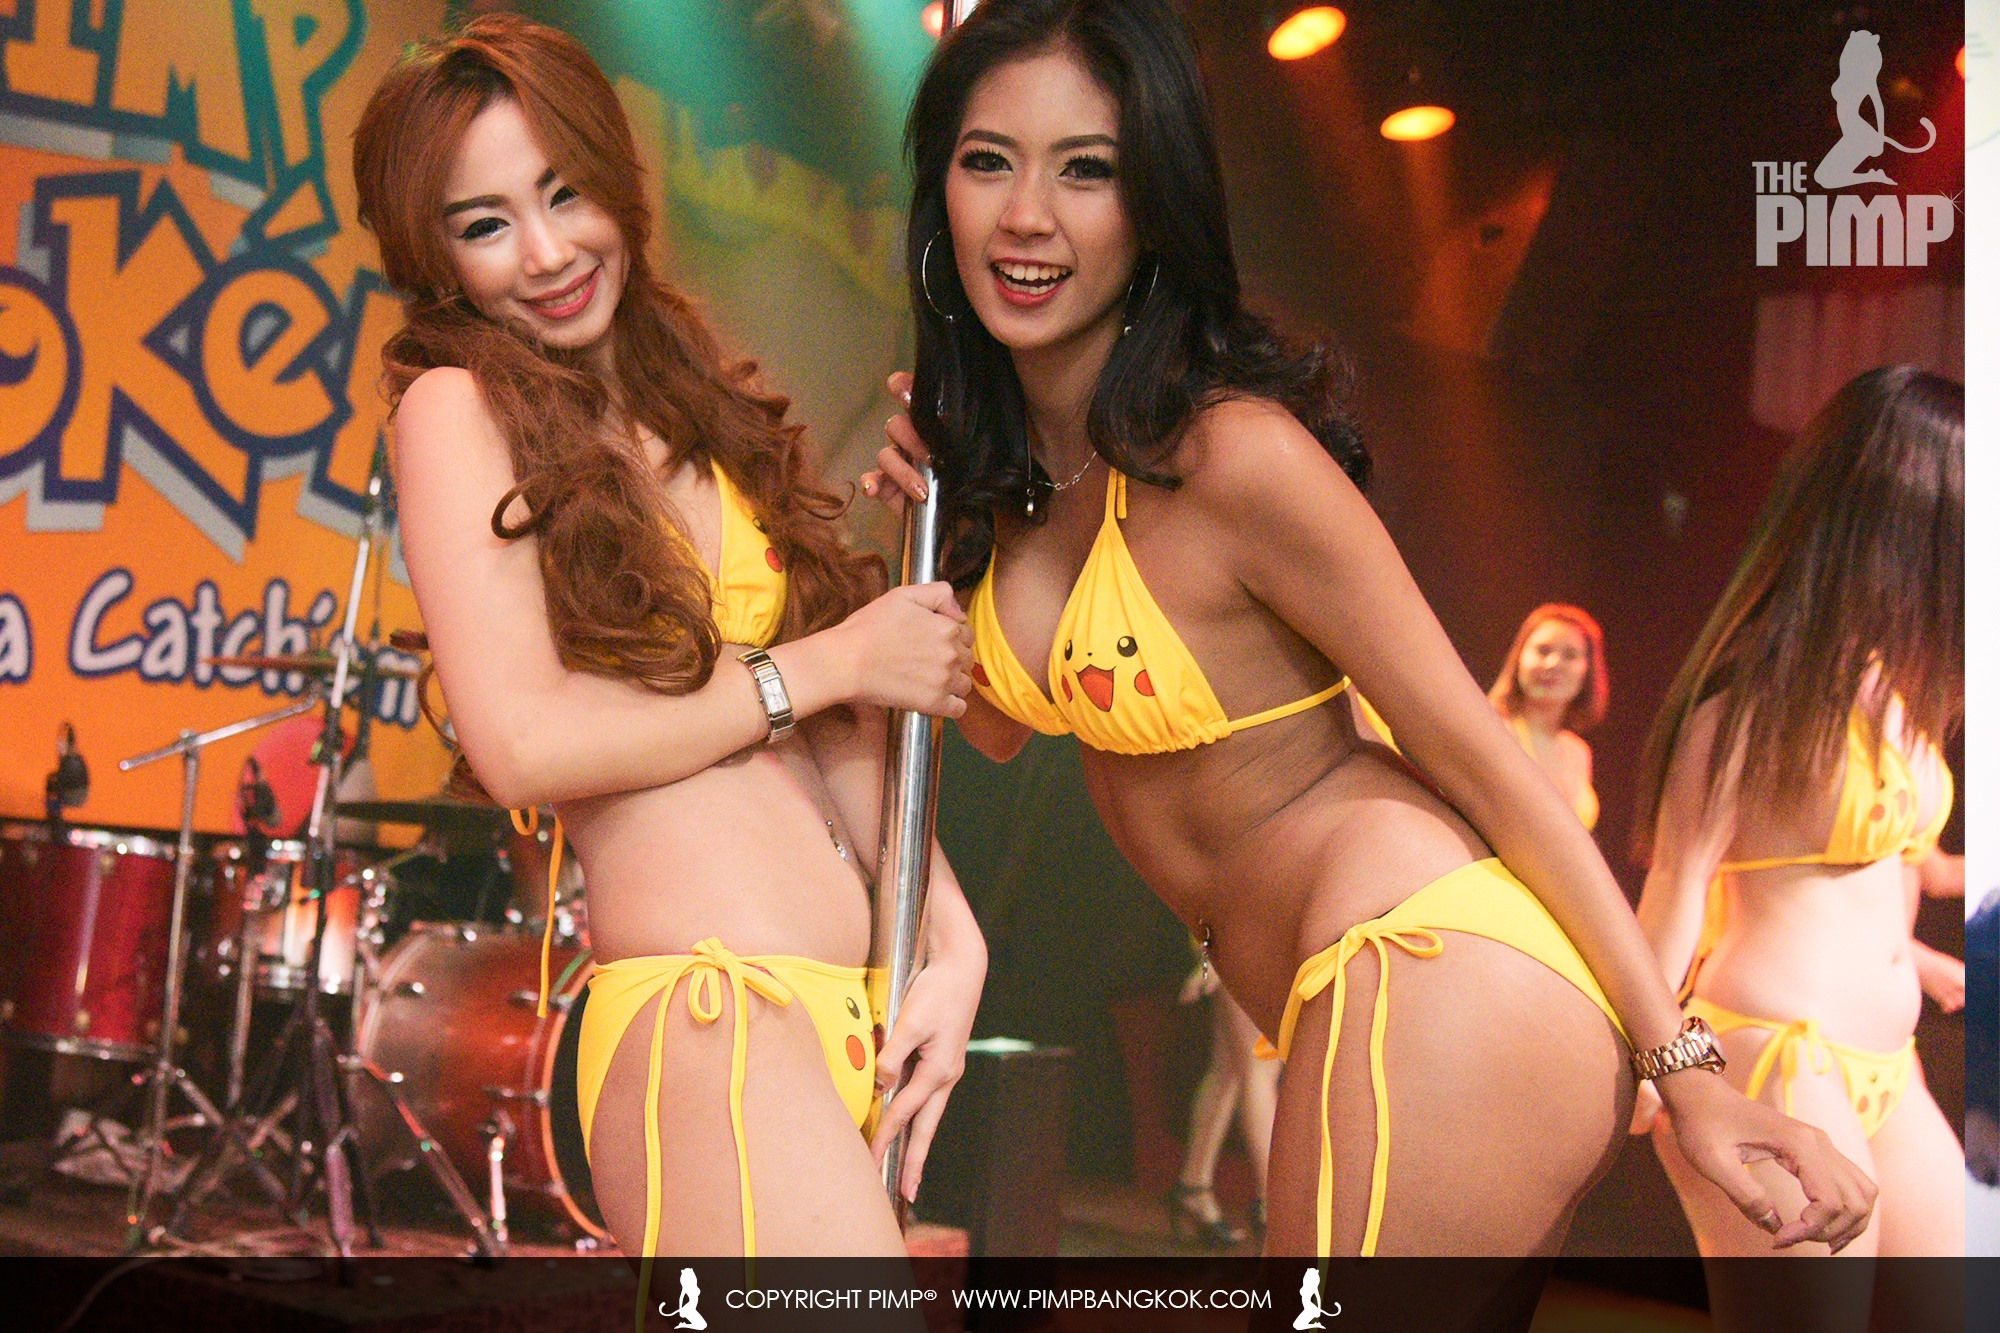 Two of the dancers from The PIMP club in their yellow Pikachu bikinis